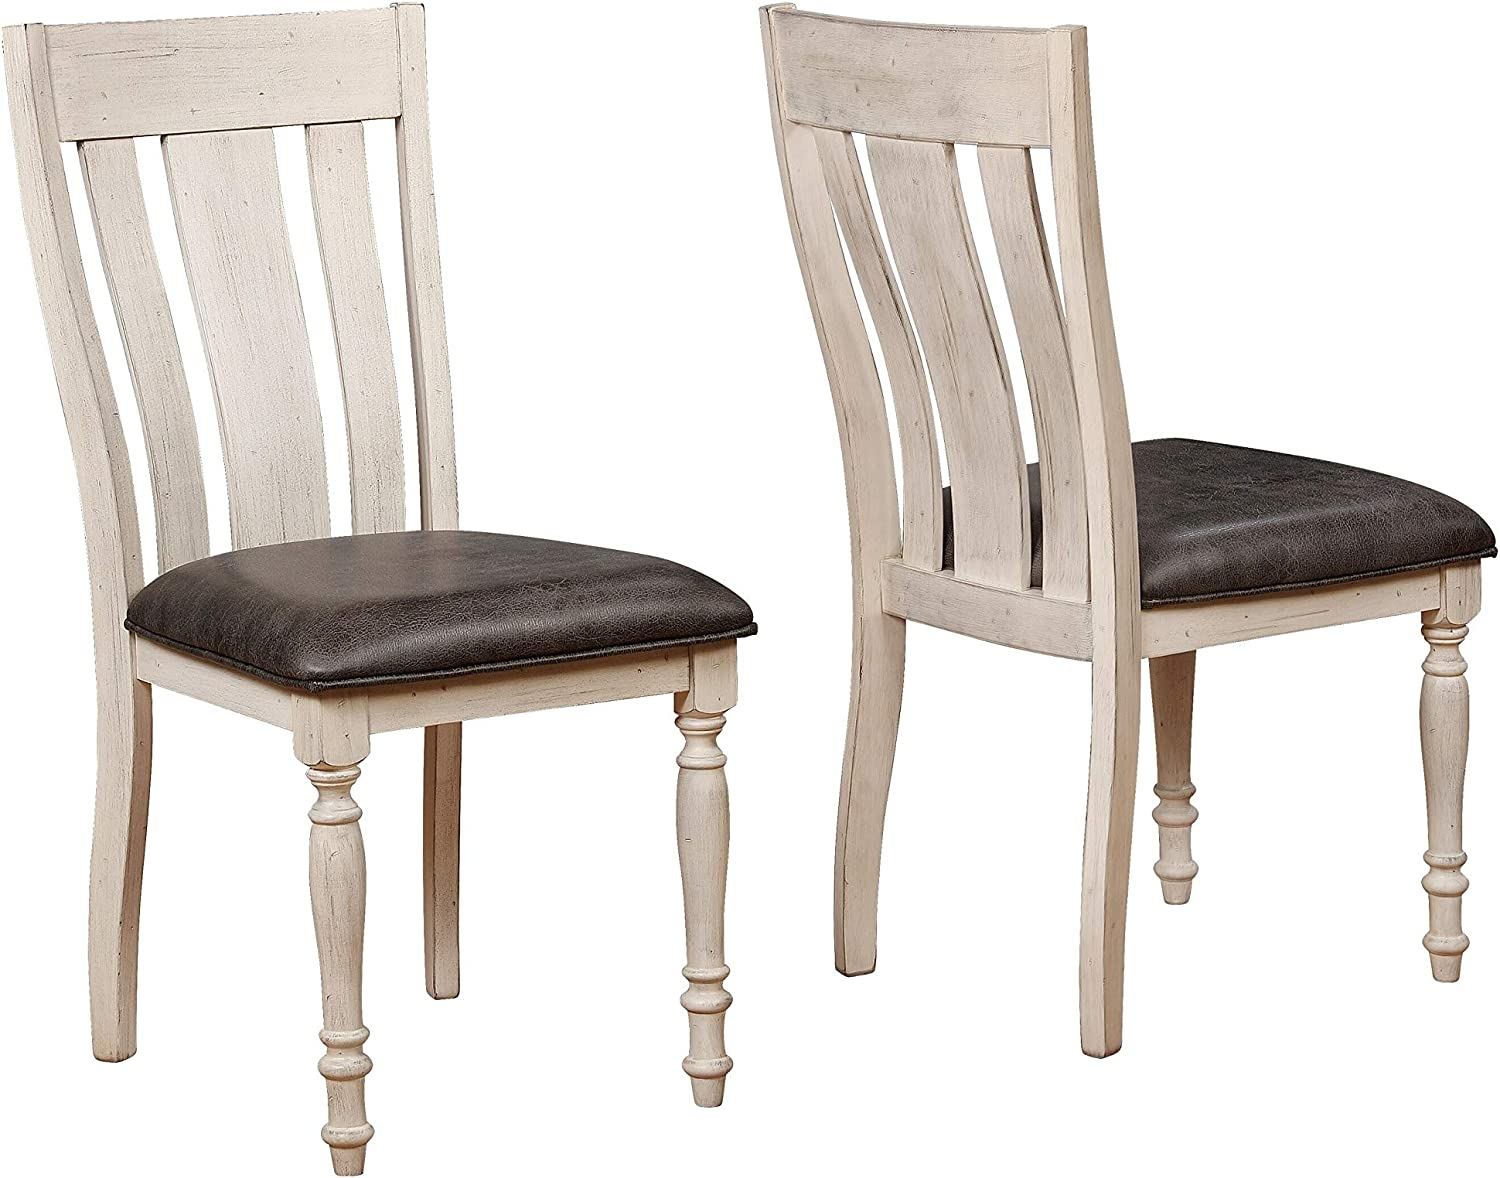 Roundhill Furniture Arch Turned Leg Dining Chair, Set of 2, Weathered Oak